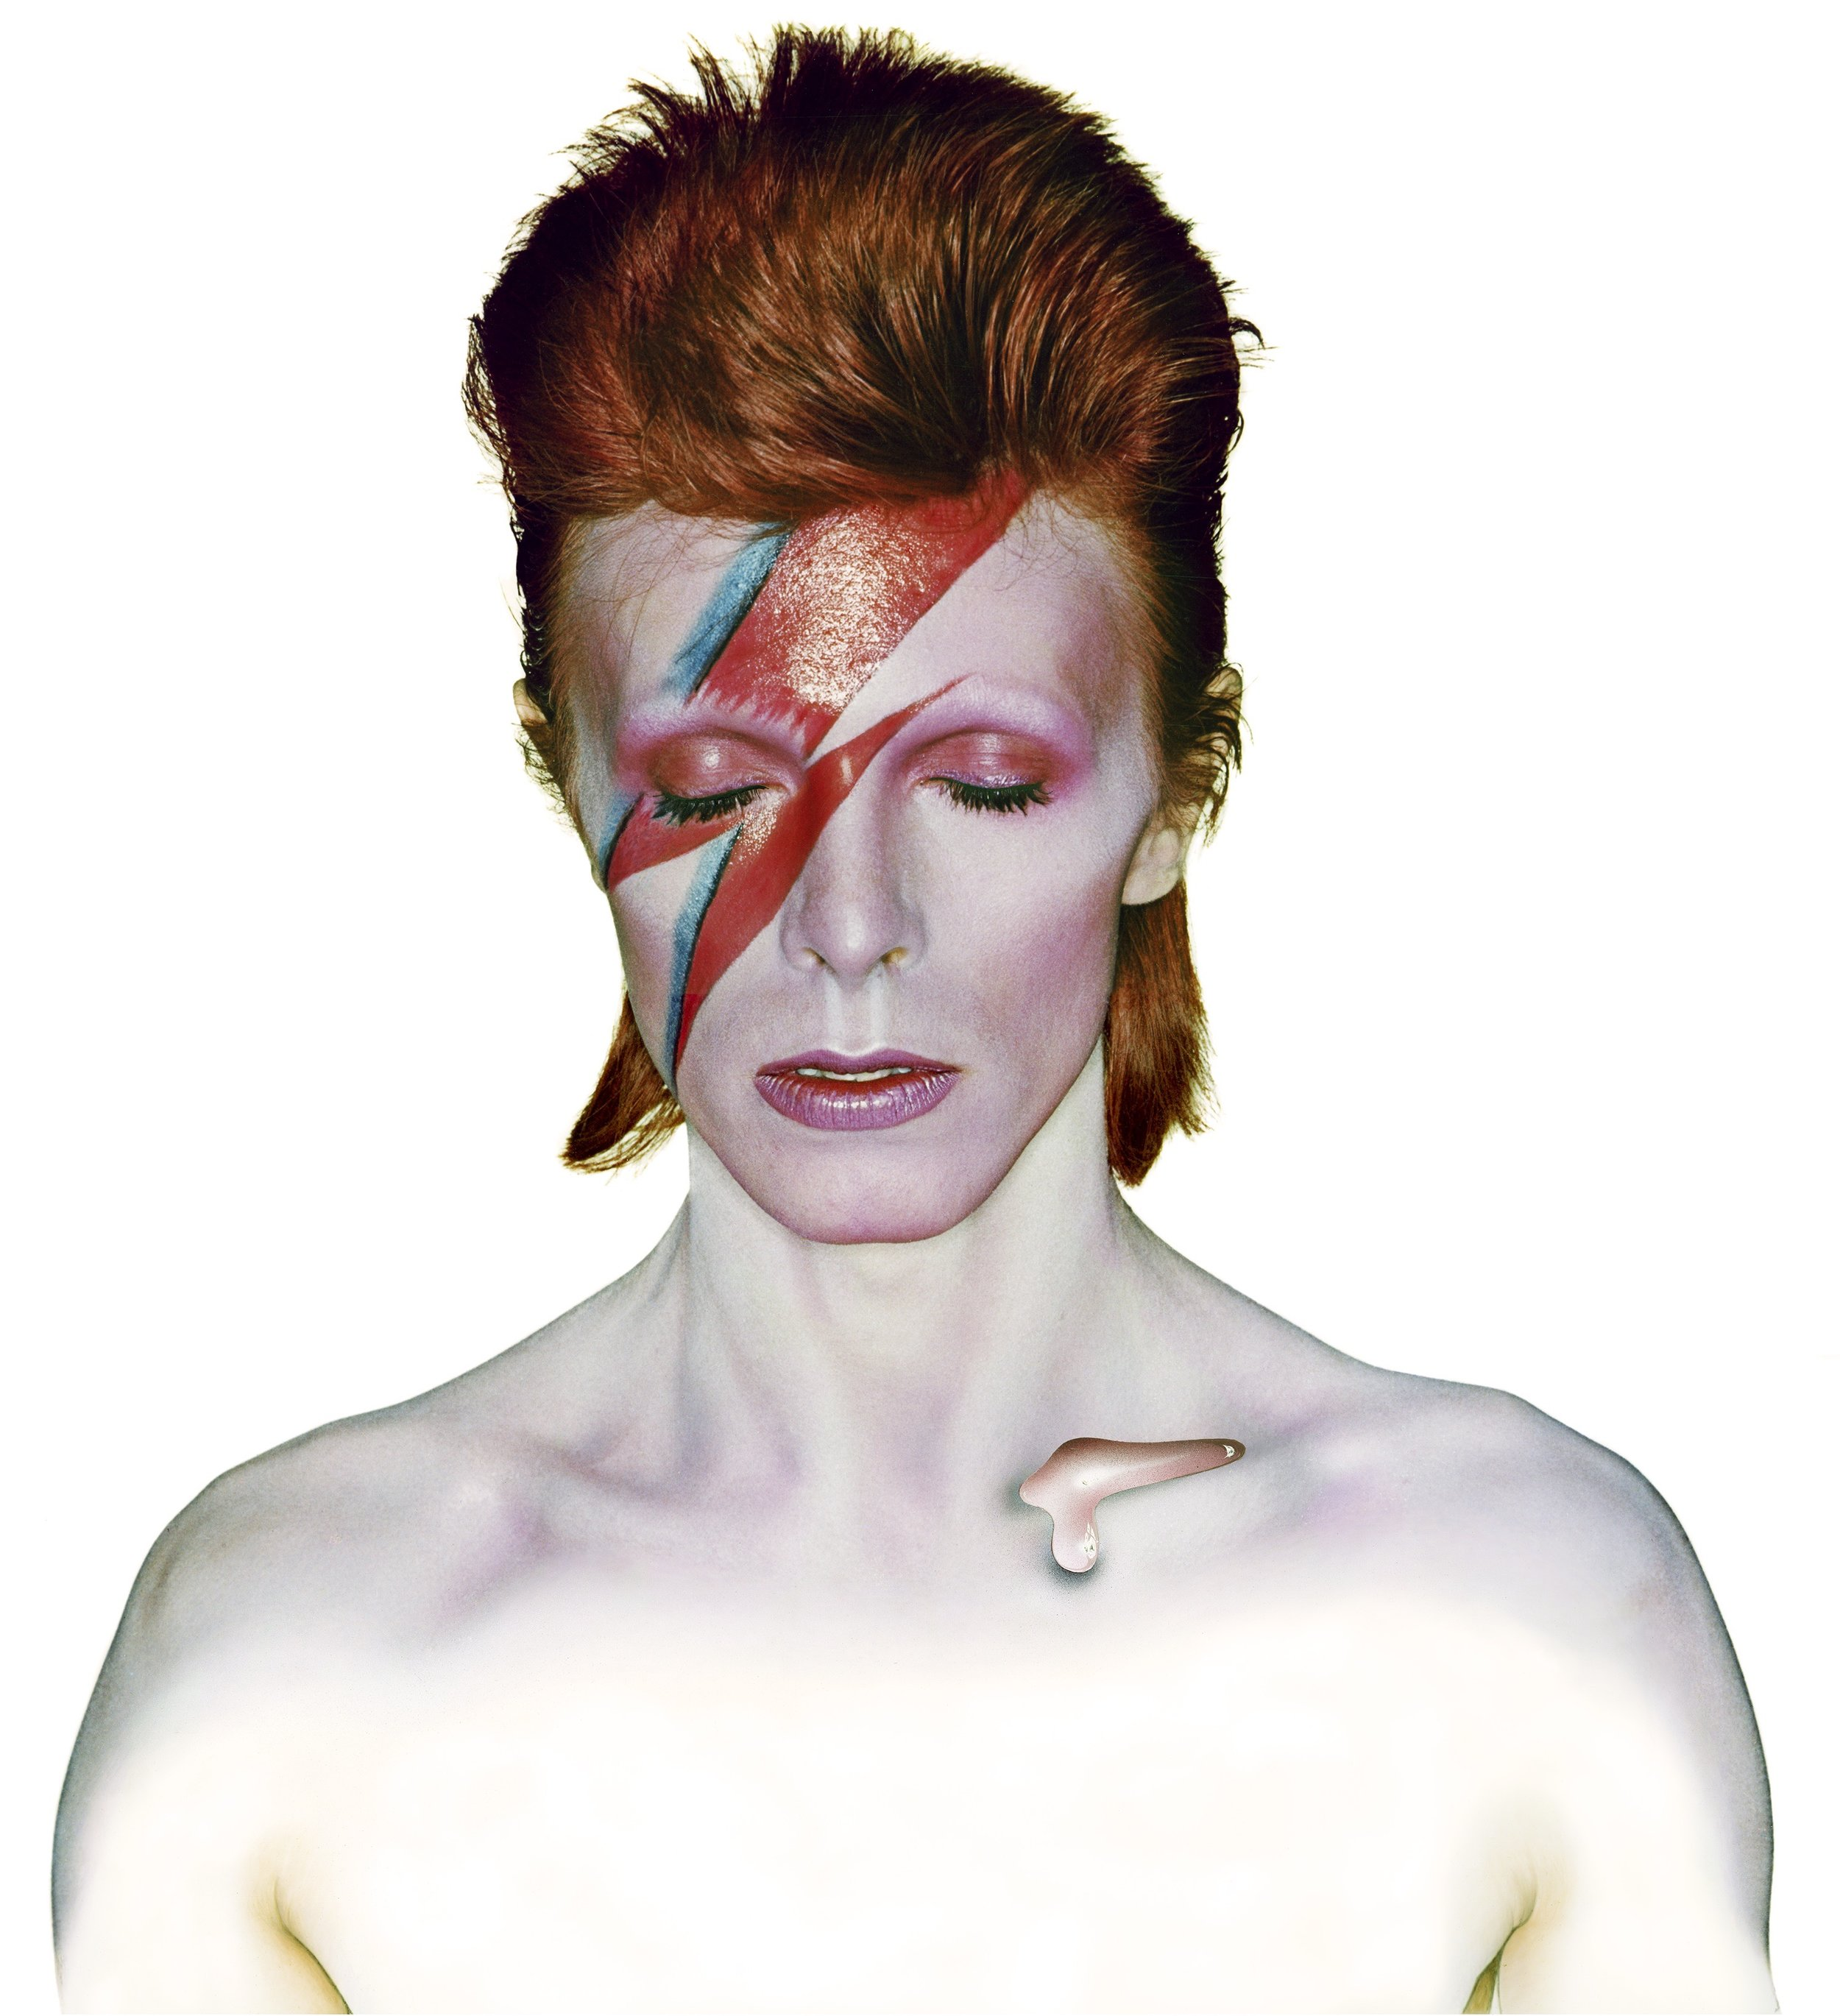 David Bowie - Aladdin Sane, eyes closed by Brian Duffy